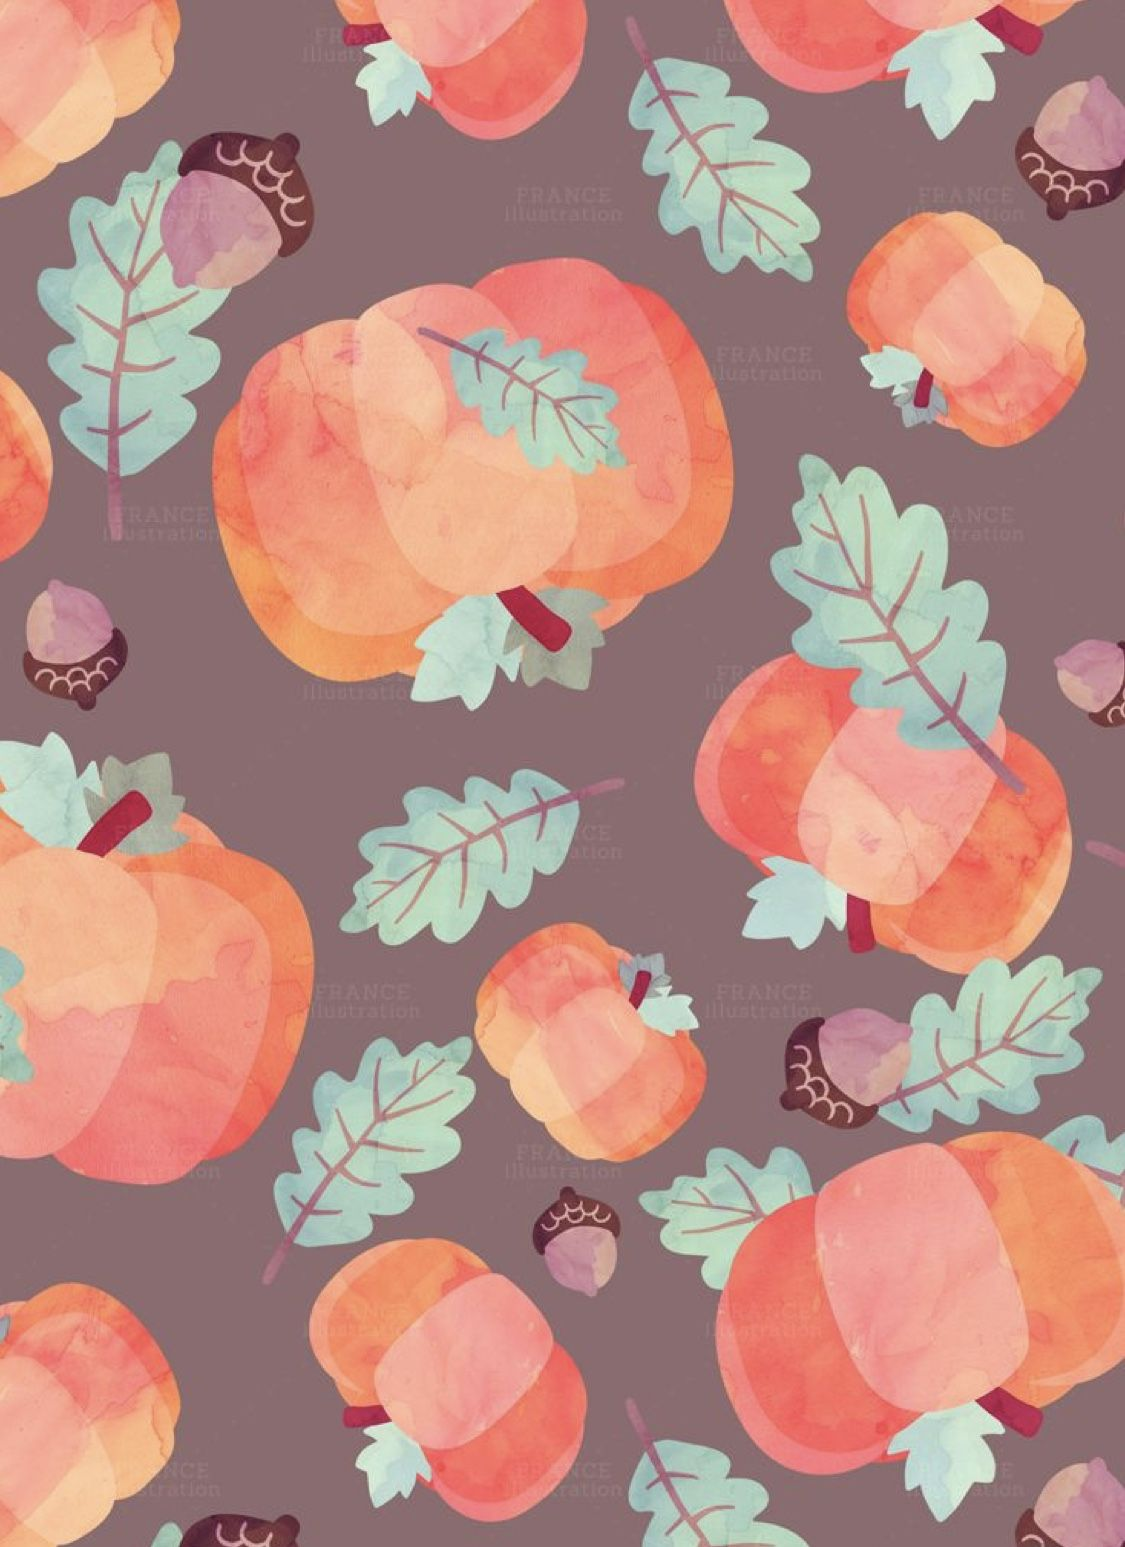 Pin by Tammy Jordan on Crafts Fall wallpaper, Apple